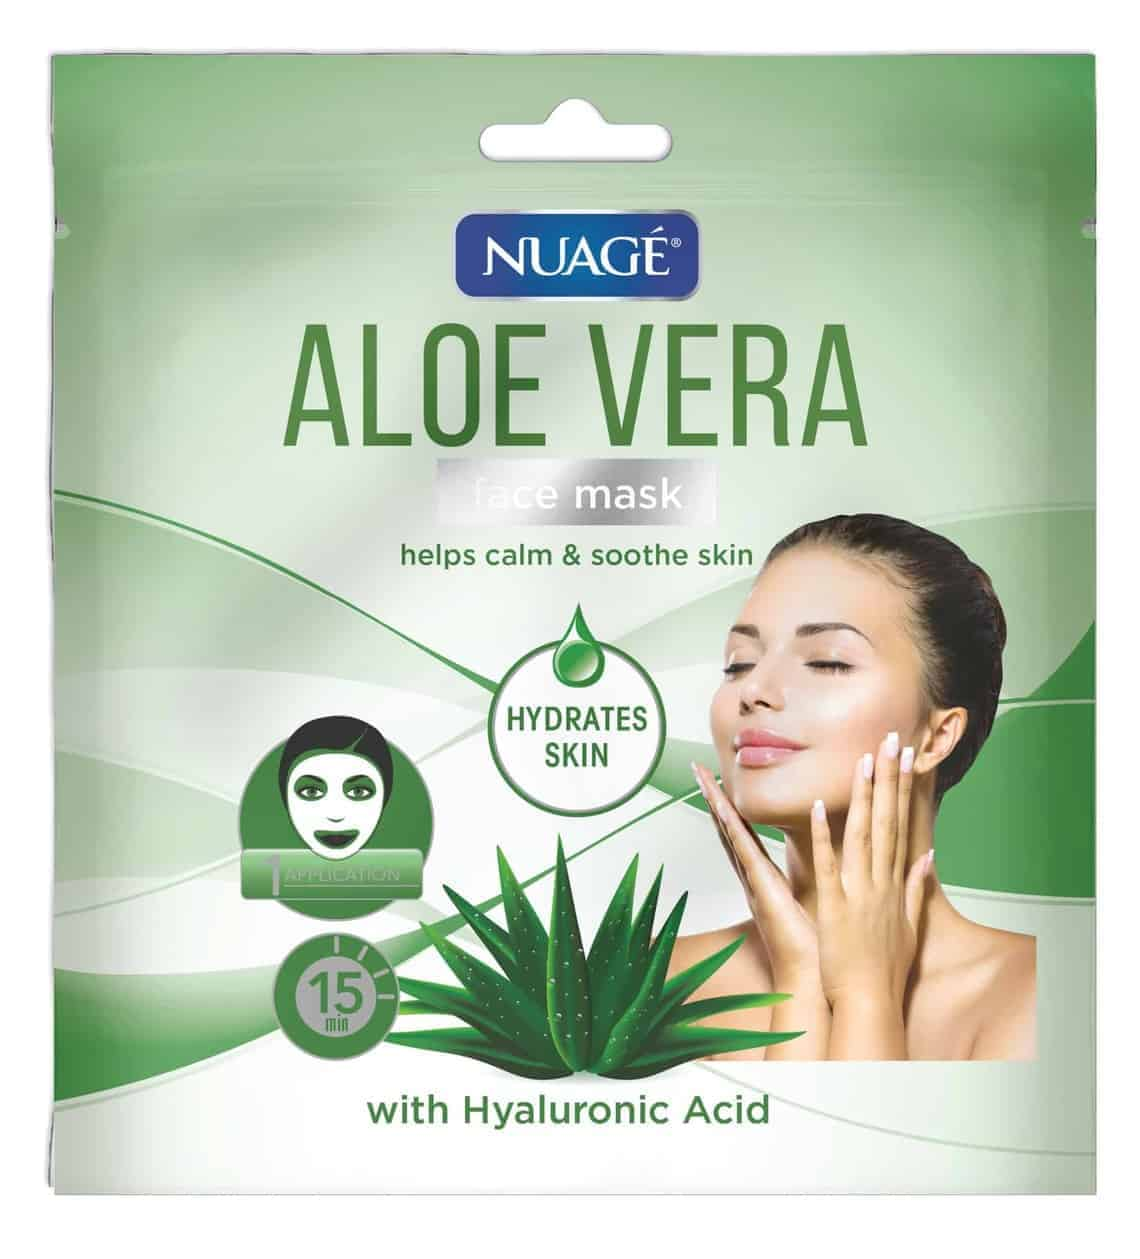 Nuage Aloe Vera & Hyaluronic Acid Face Mask